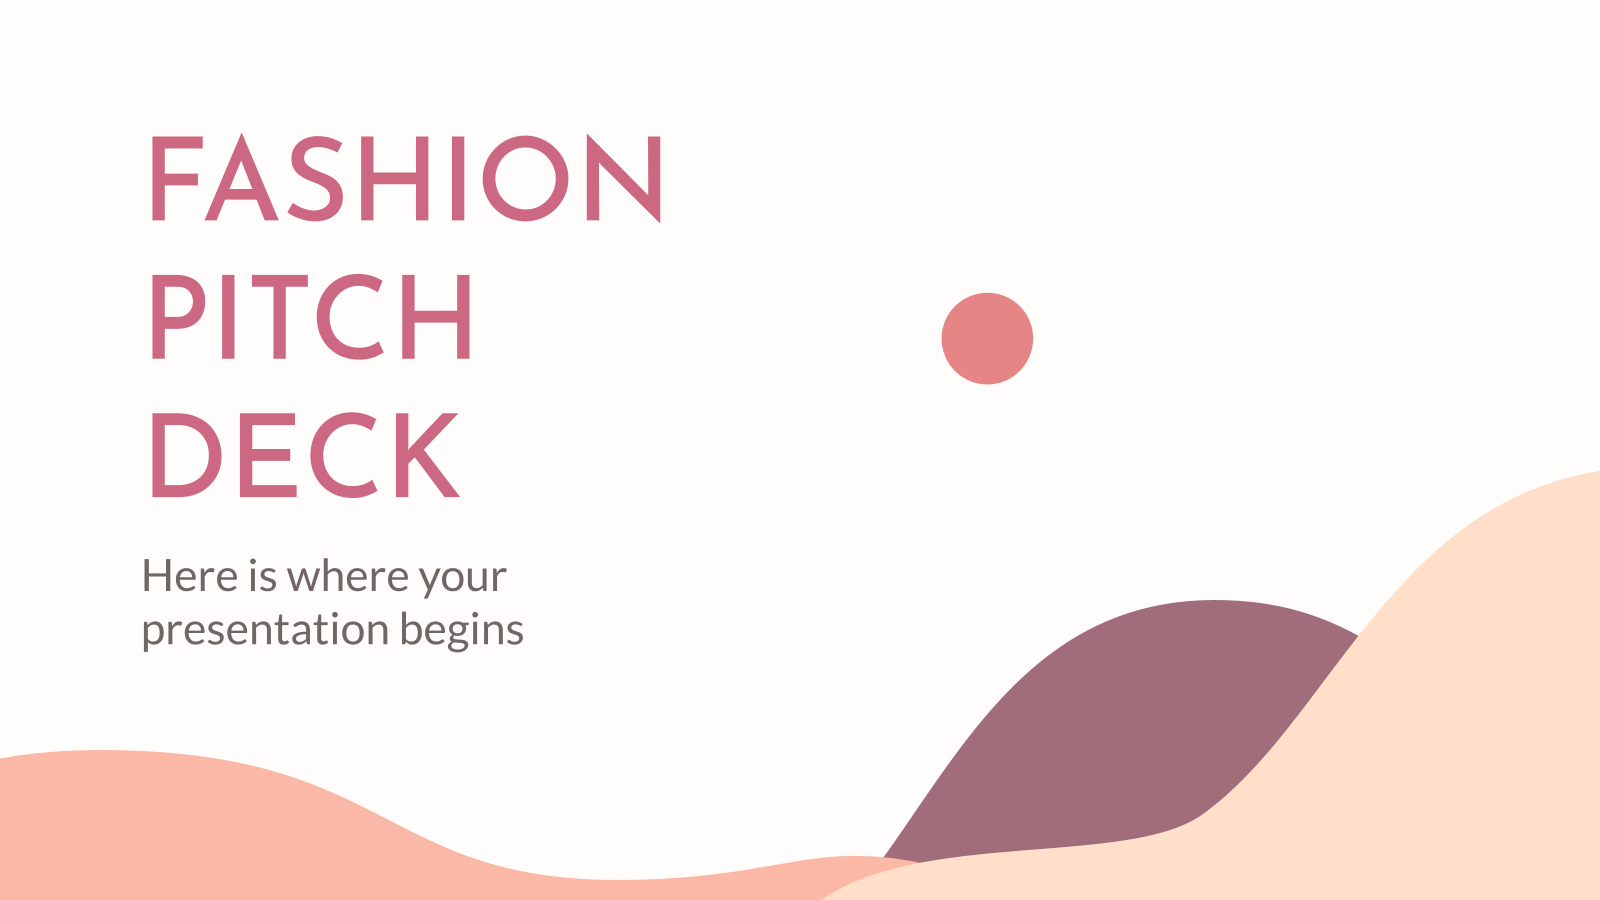 Fashion Pitch Deck presentation template